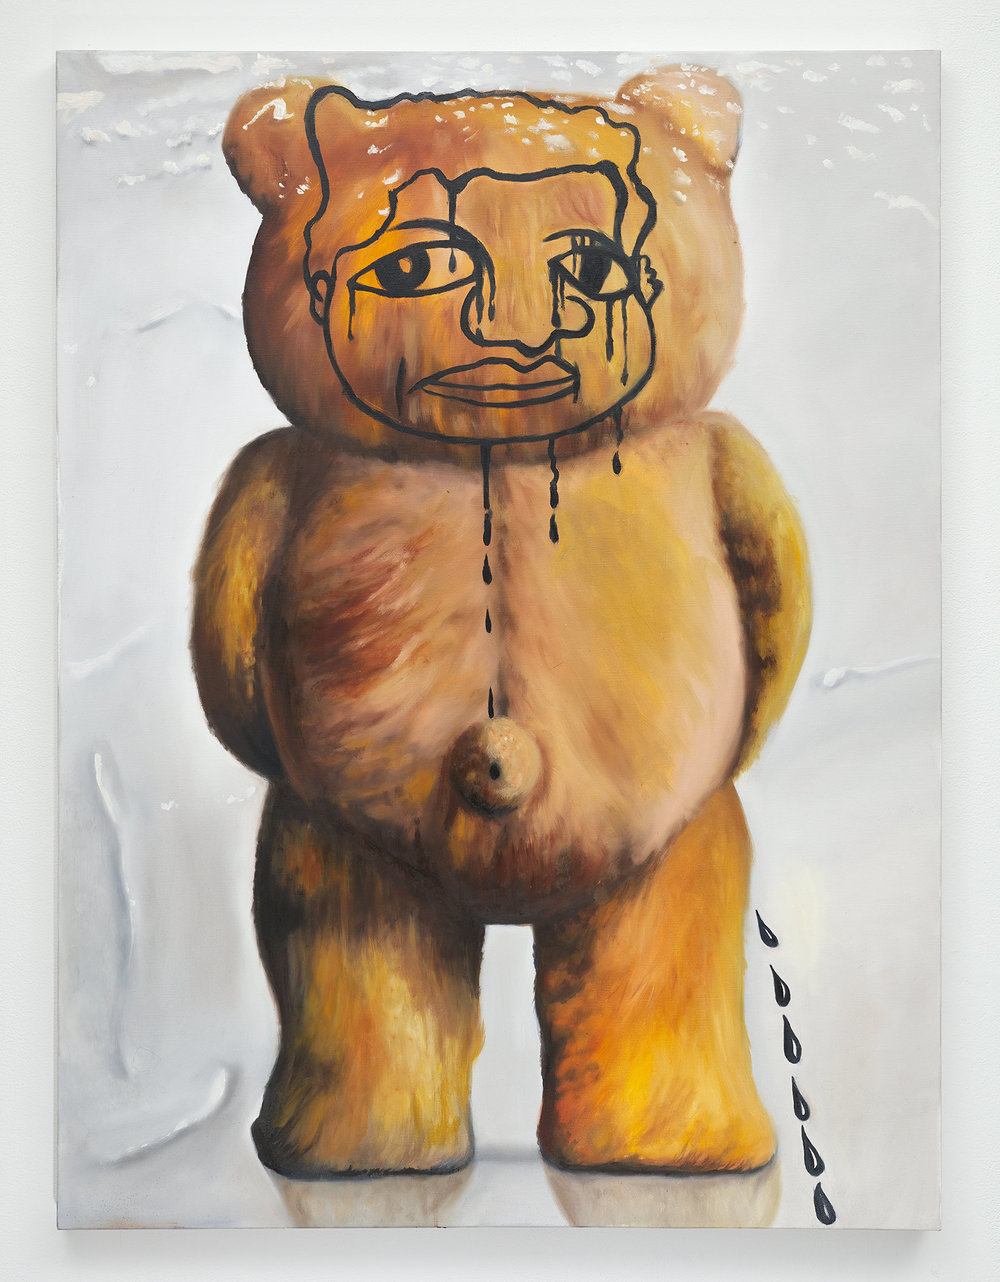 Jason Bryant, Thunder Buddies for Life, 2017